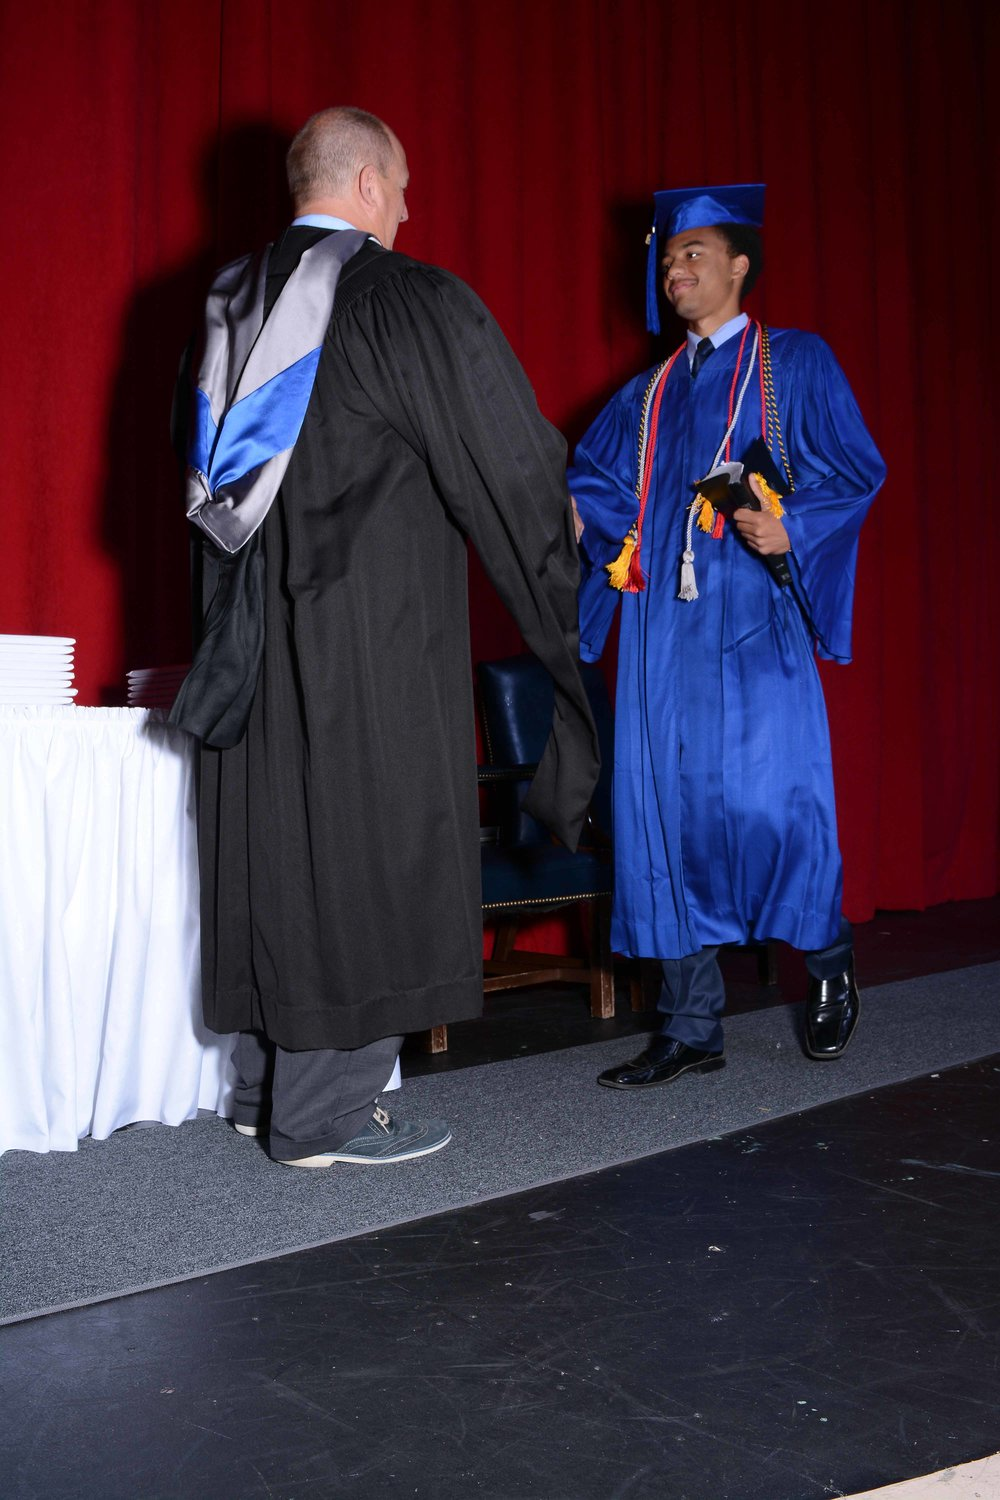 May14 Commencement148.jpg